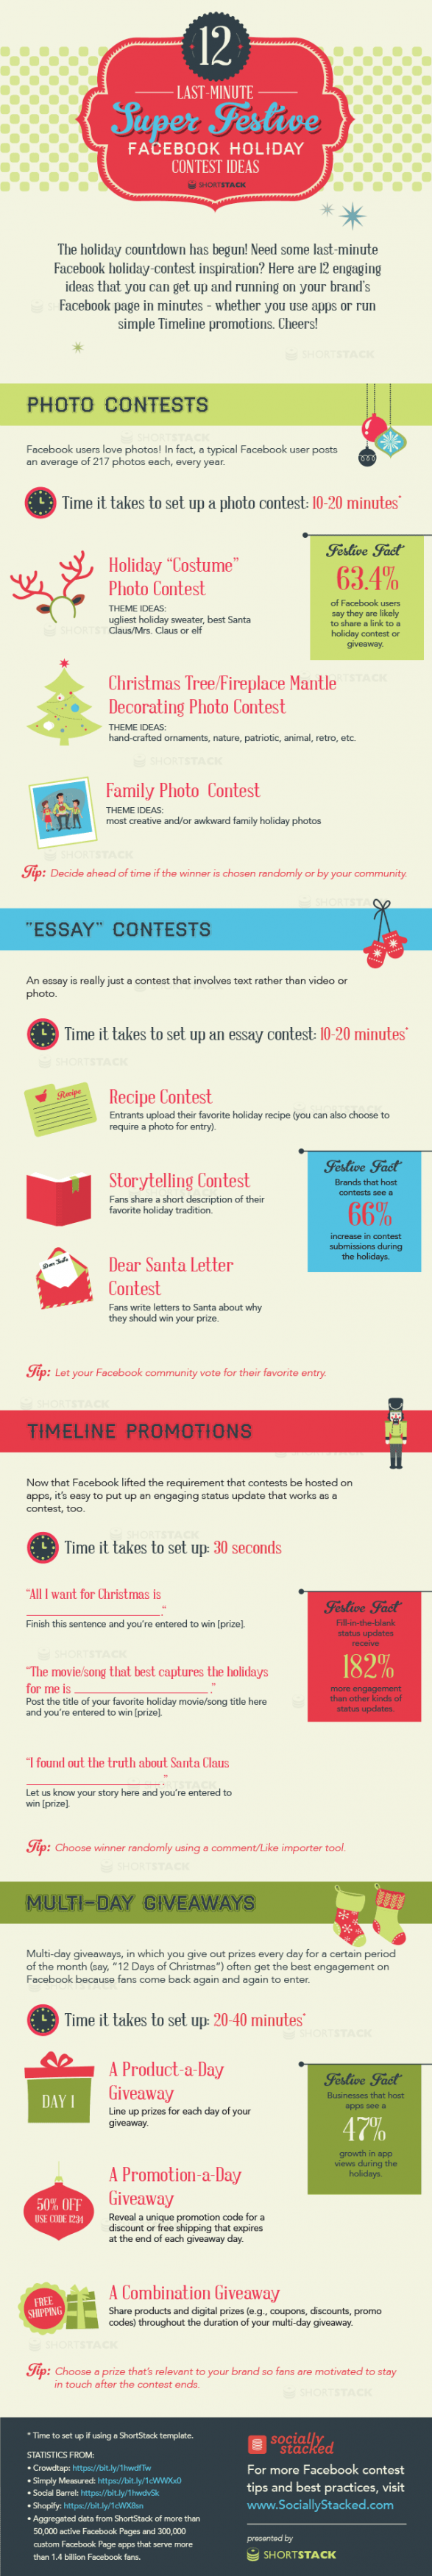 12 Last Minute Facebook Holiday Contest Ideas